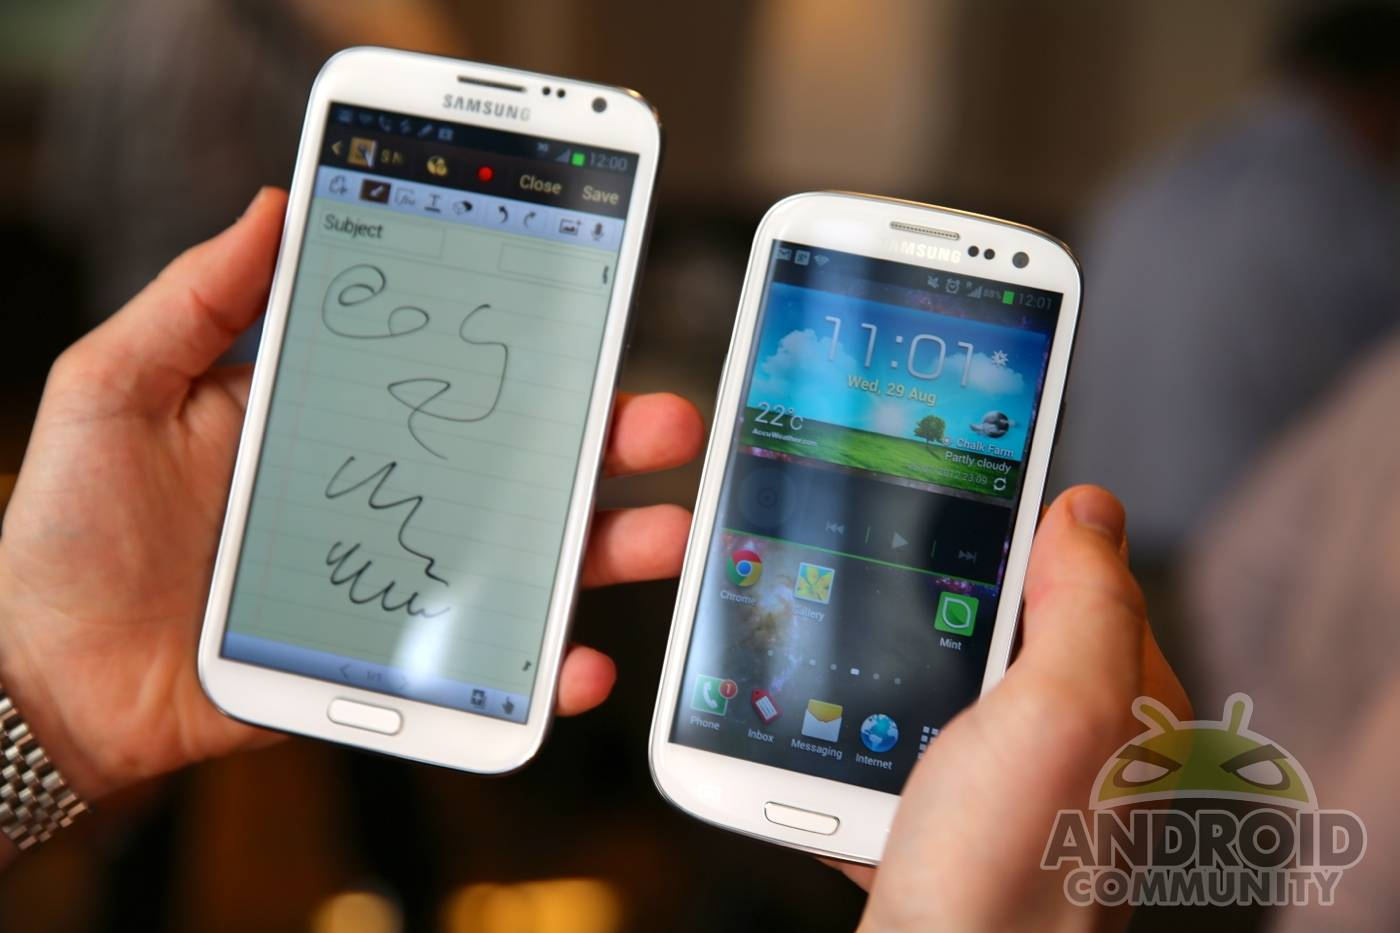 Android 5 0 prematurely outed by Galaxy Note II tipster - Android